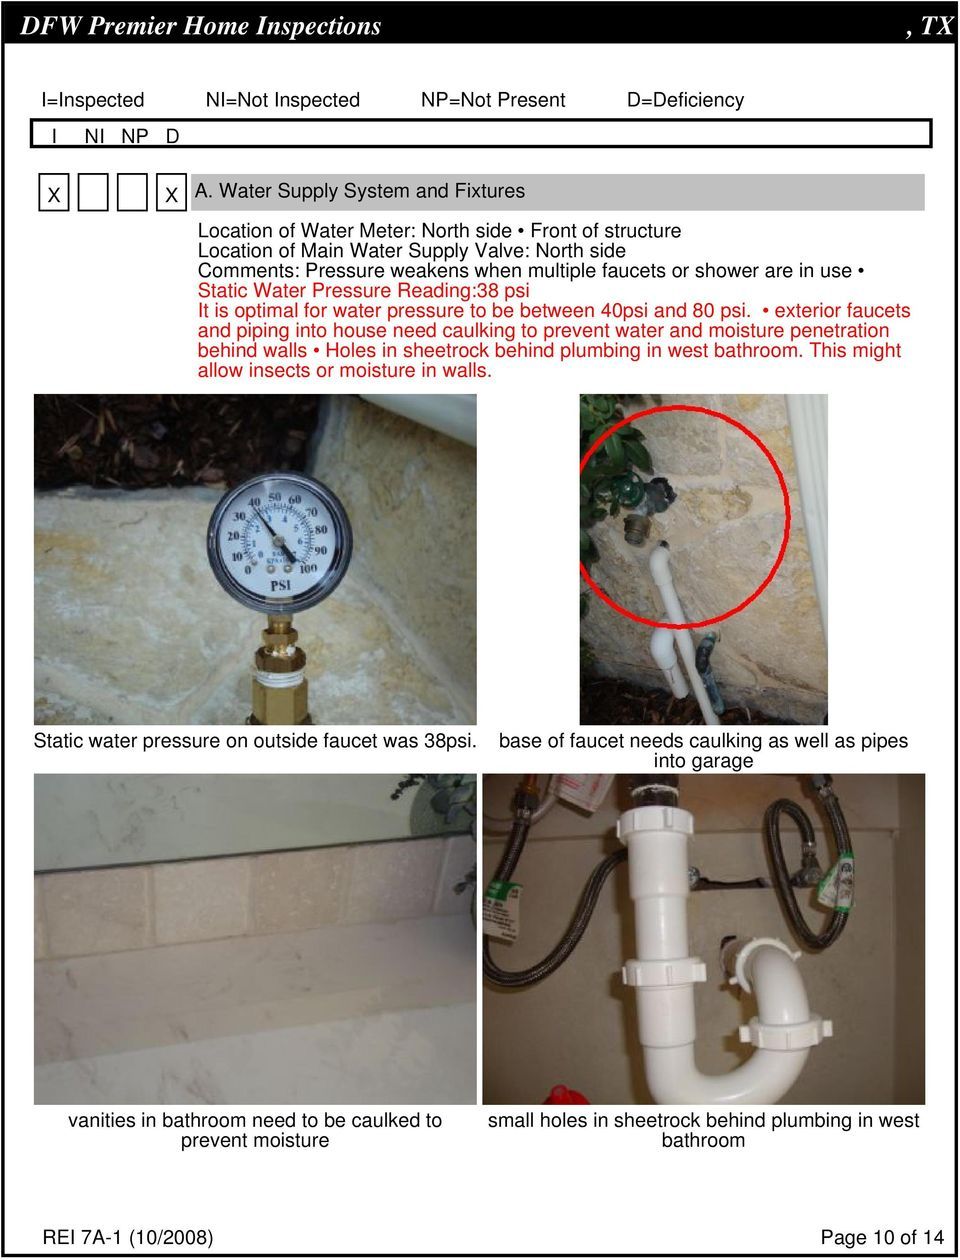 Static Water Pressure Reading:38 psi t is optimal for water pressure to be between 40psi and 80 psi.